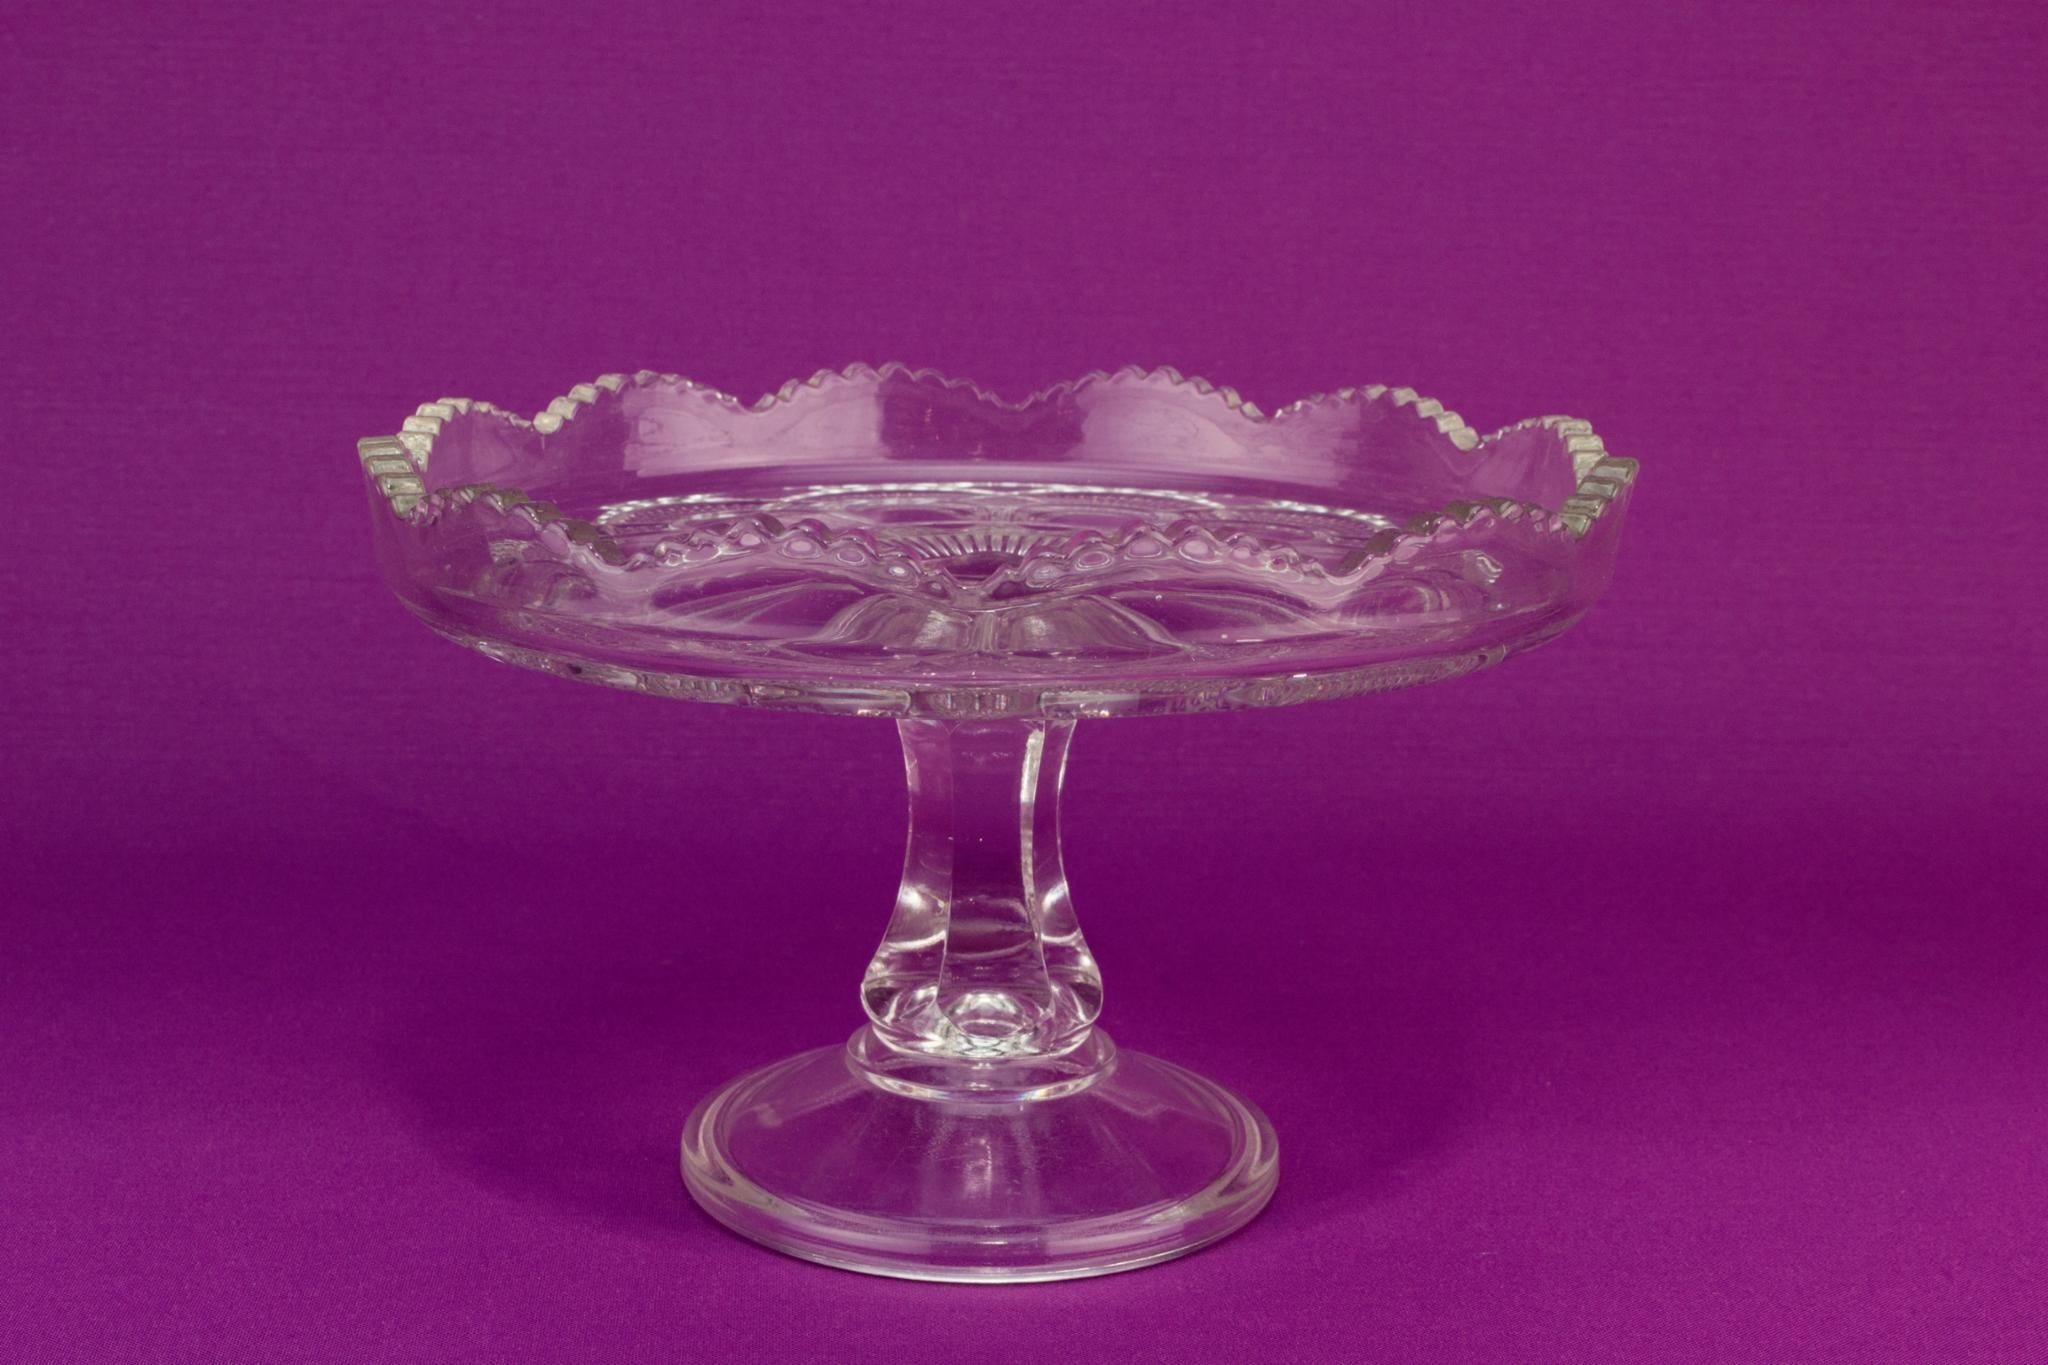 Pressed glass cake stand, English early 1900s